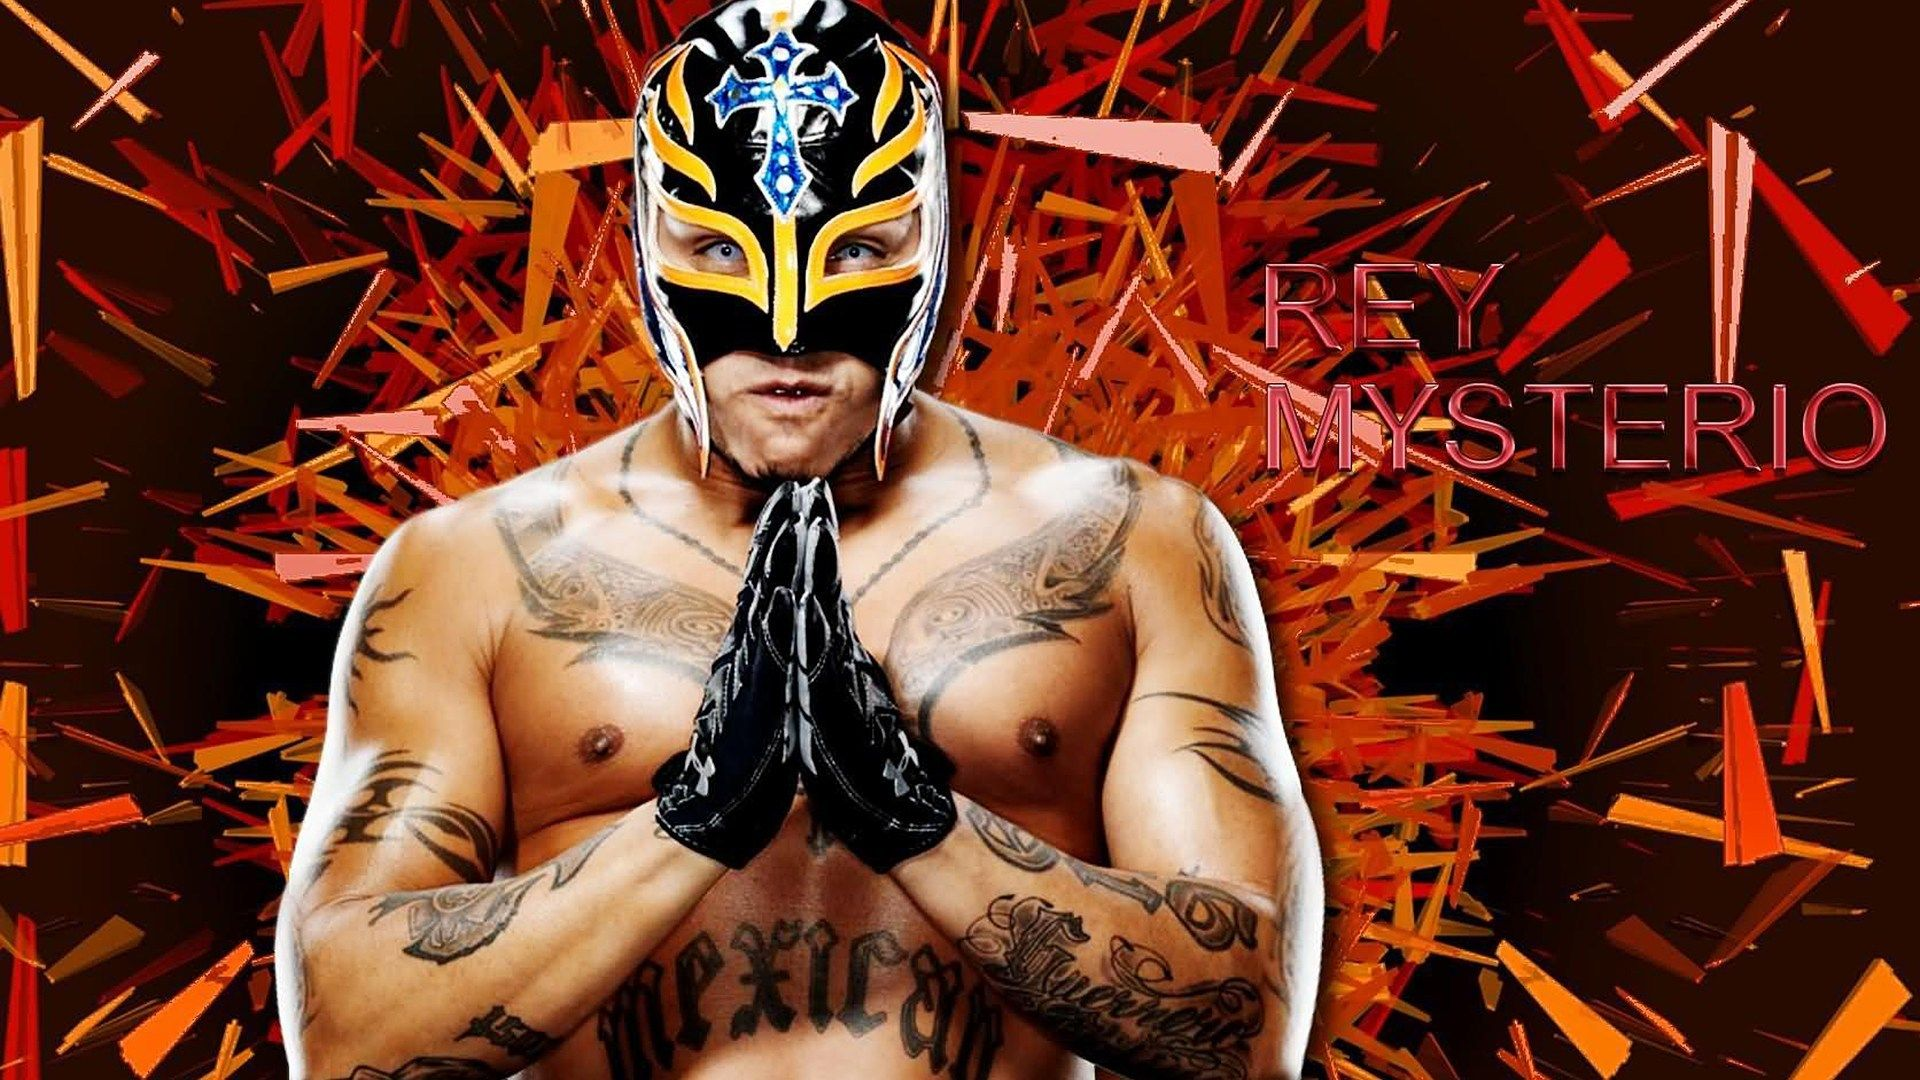 1920x1080 Rey Mysterio HD Wallpaper & Background • 25491 • Wallur